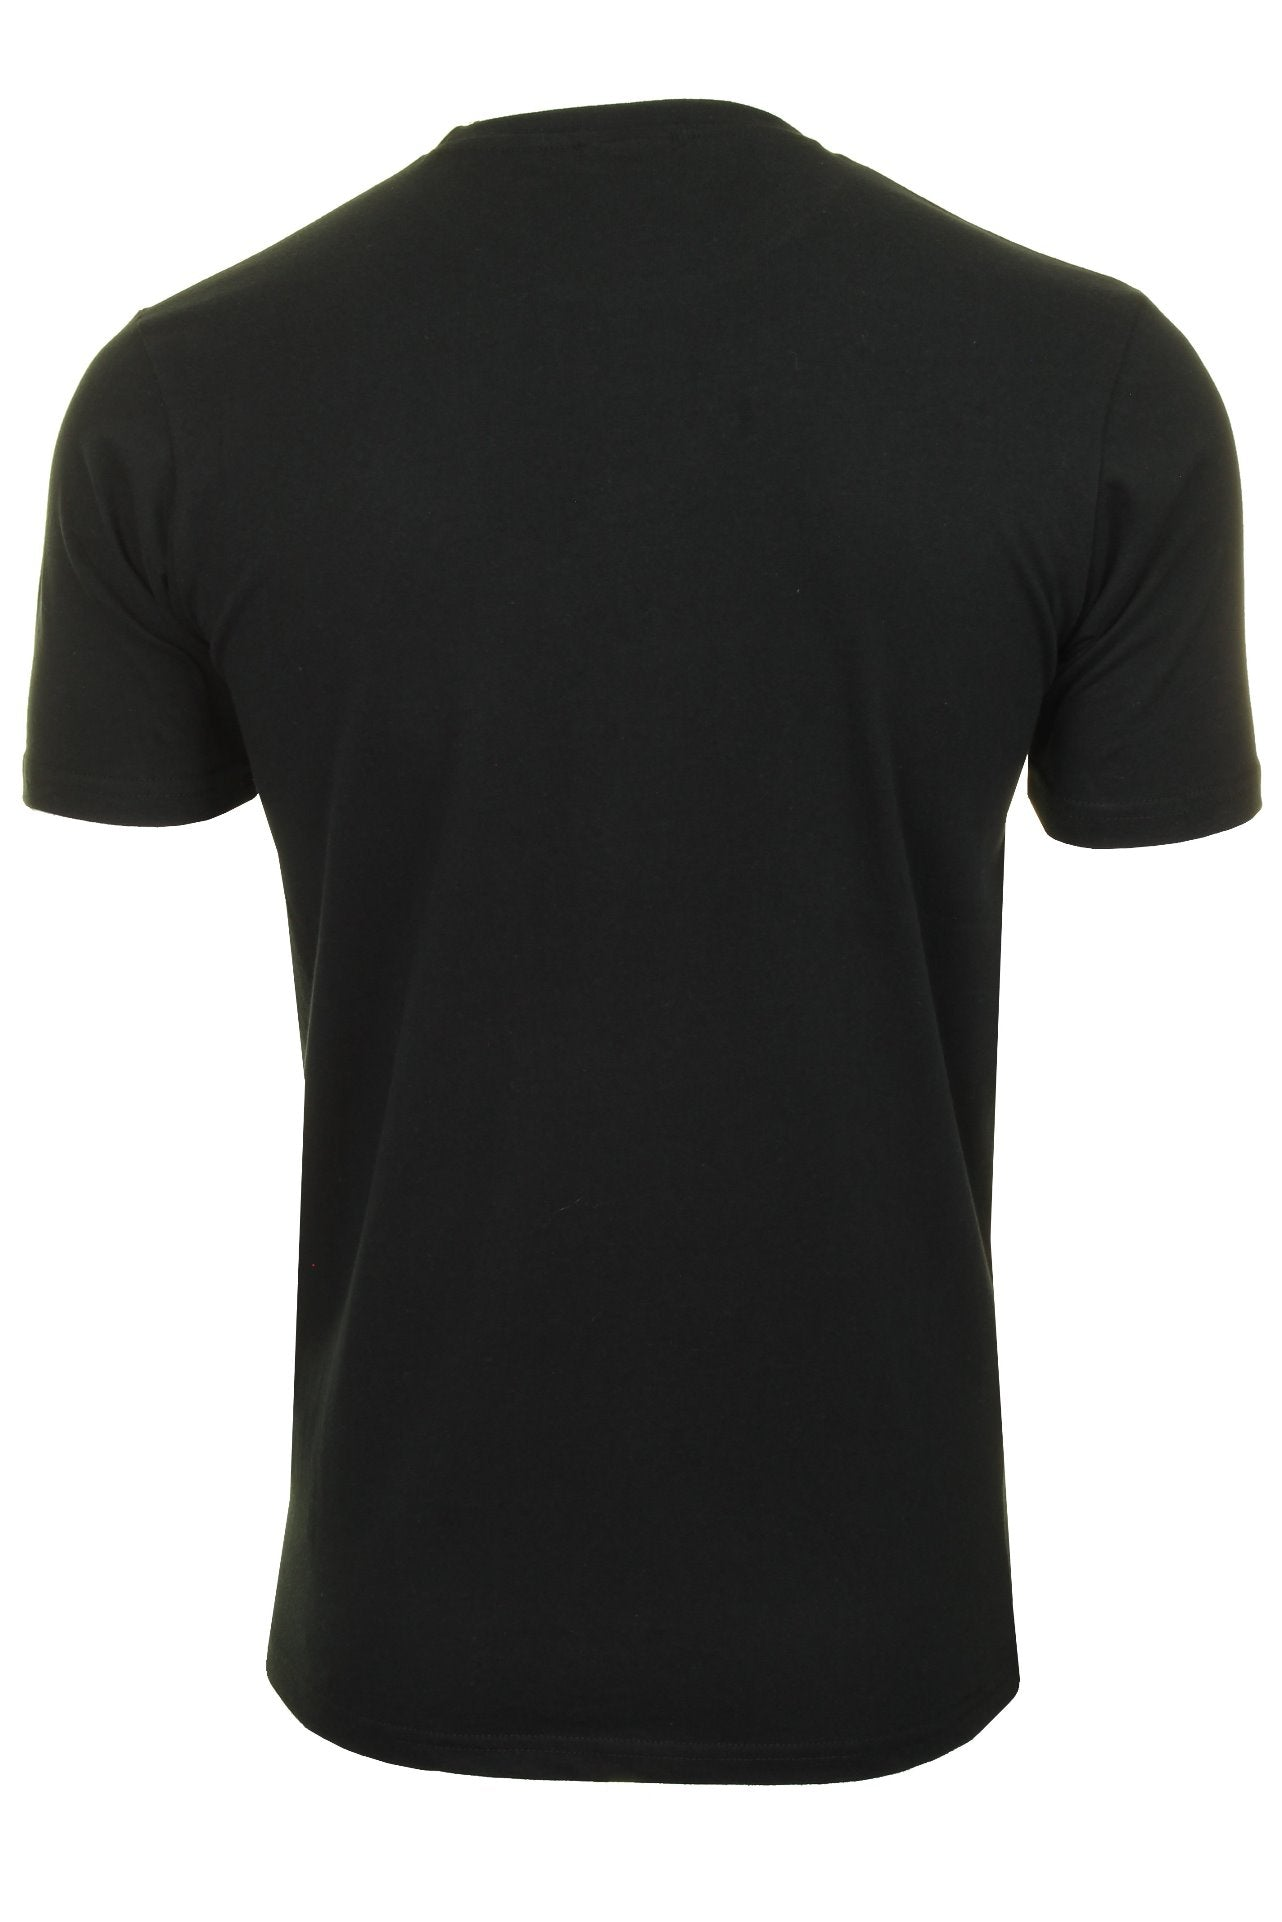 Ellesse Mens Logo Front Crew Neck T-Shirt 'PRADO' - Short Sleeved_03_Shc07405_Black